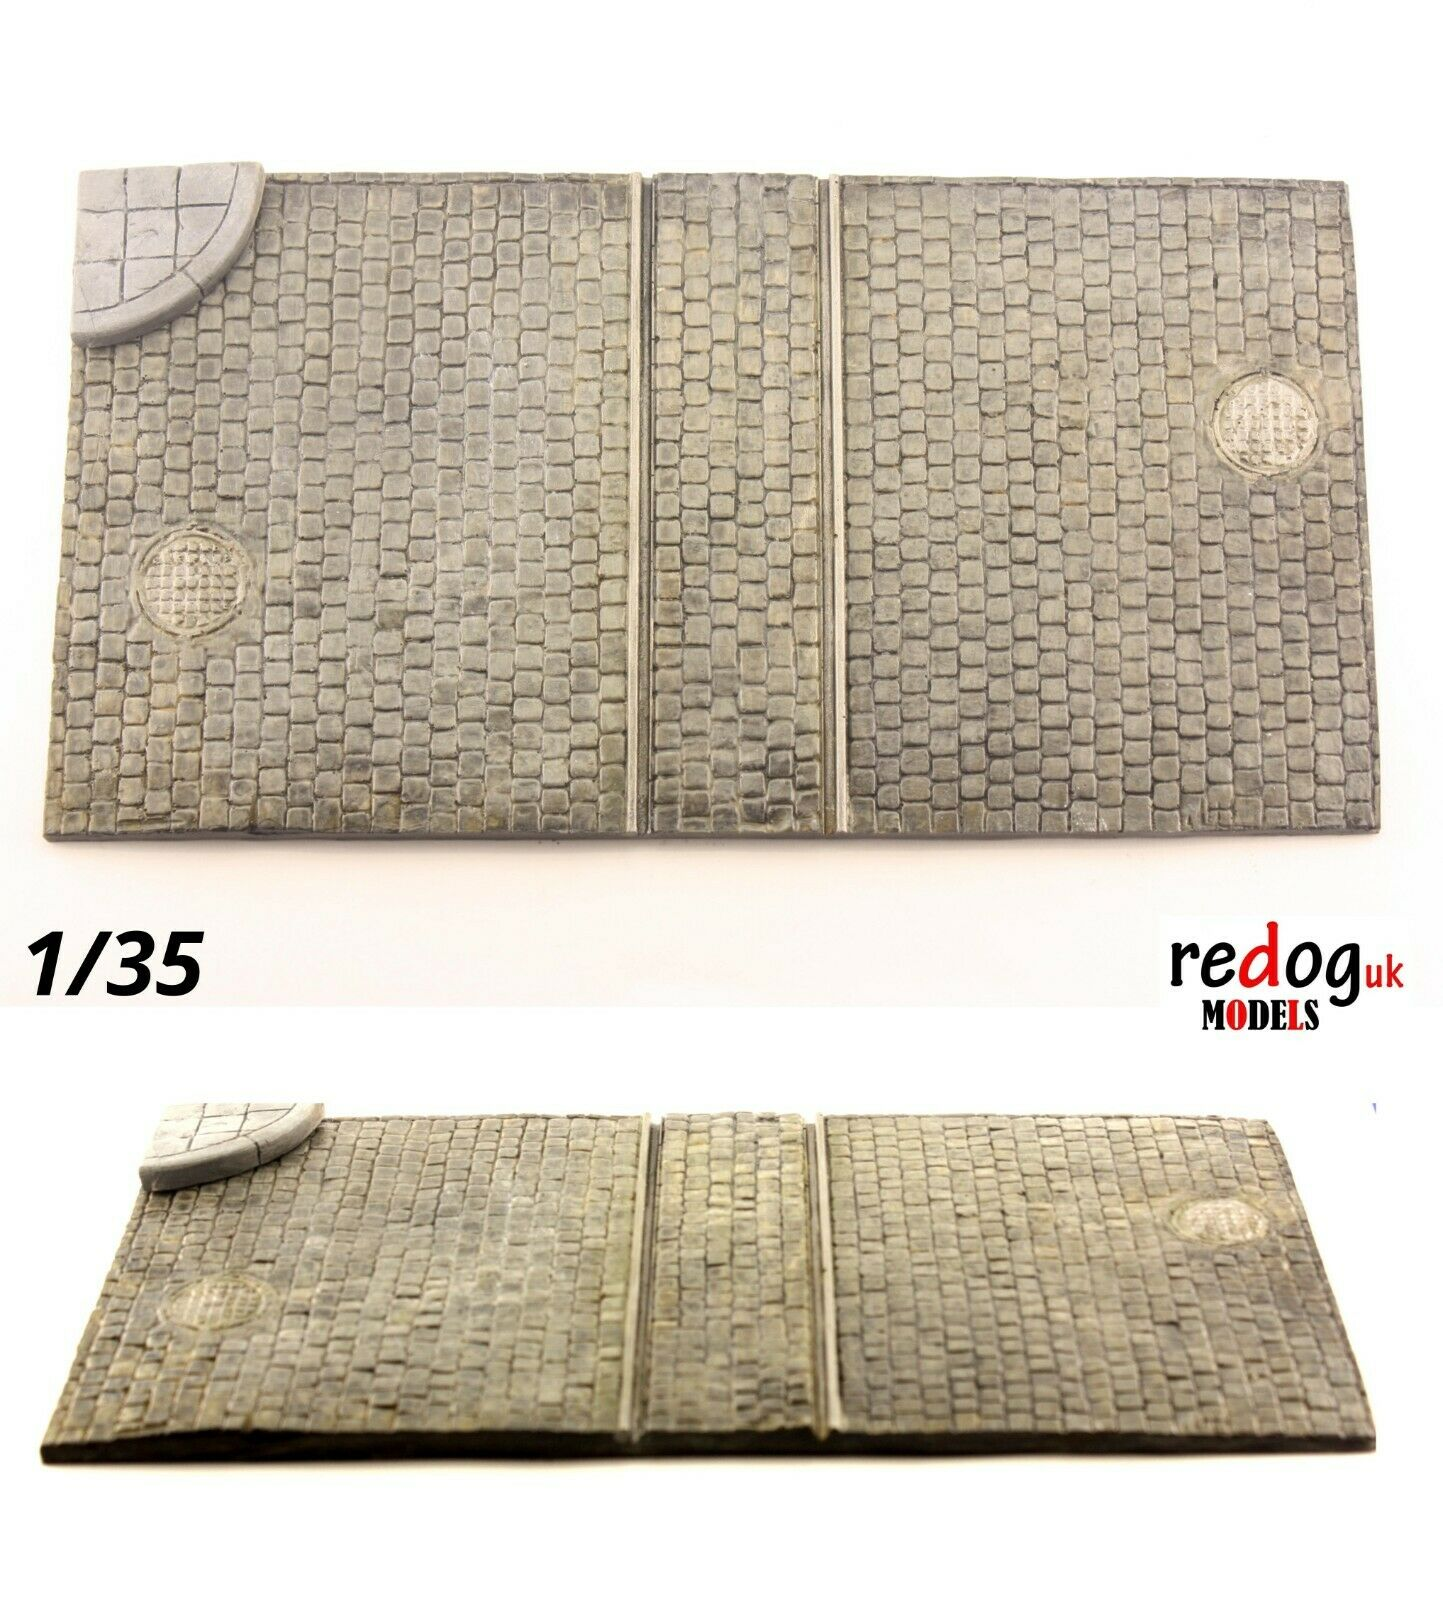 Redog 1/35 Military Scale Model Vehicle & Tank Display Dioram Base Large - U2 - redoguk